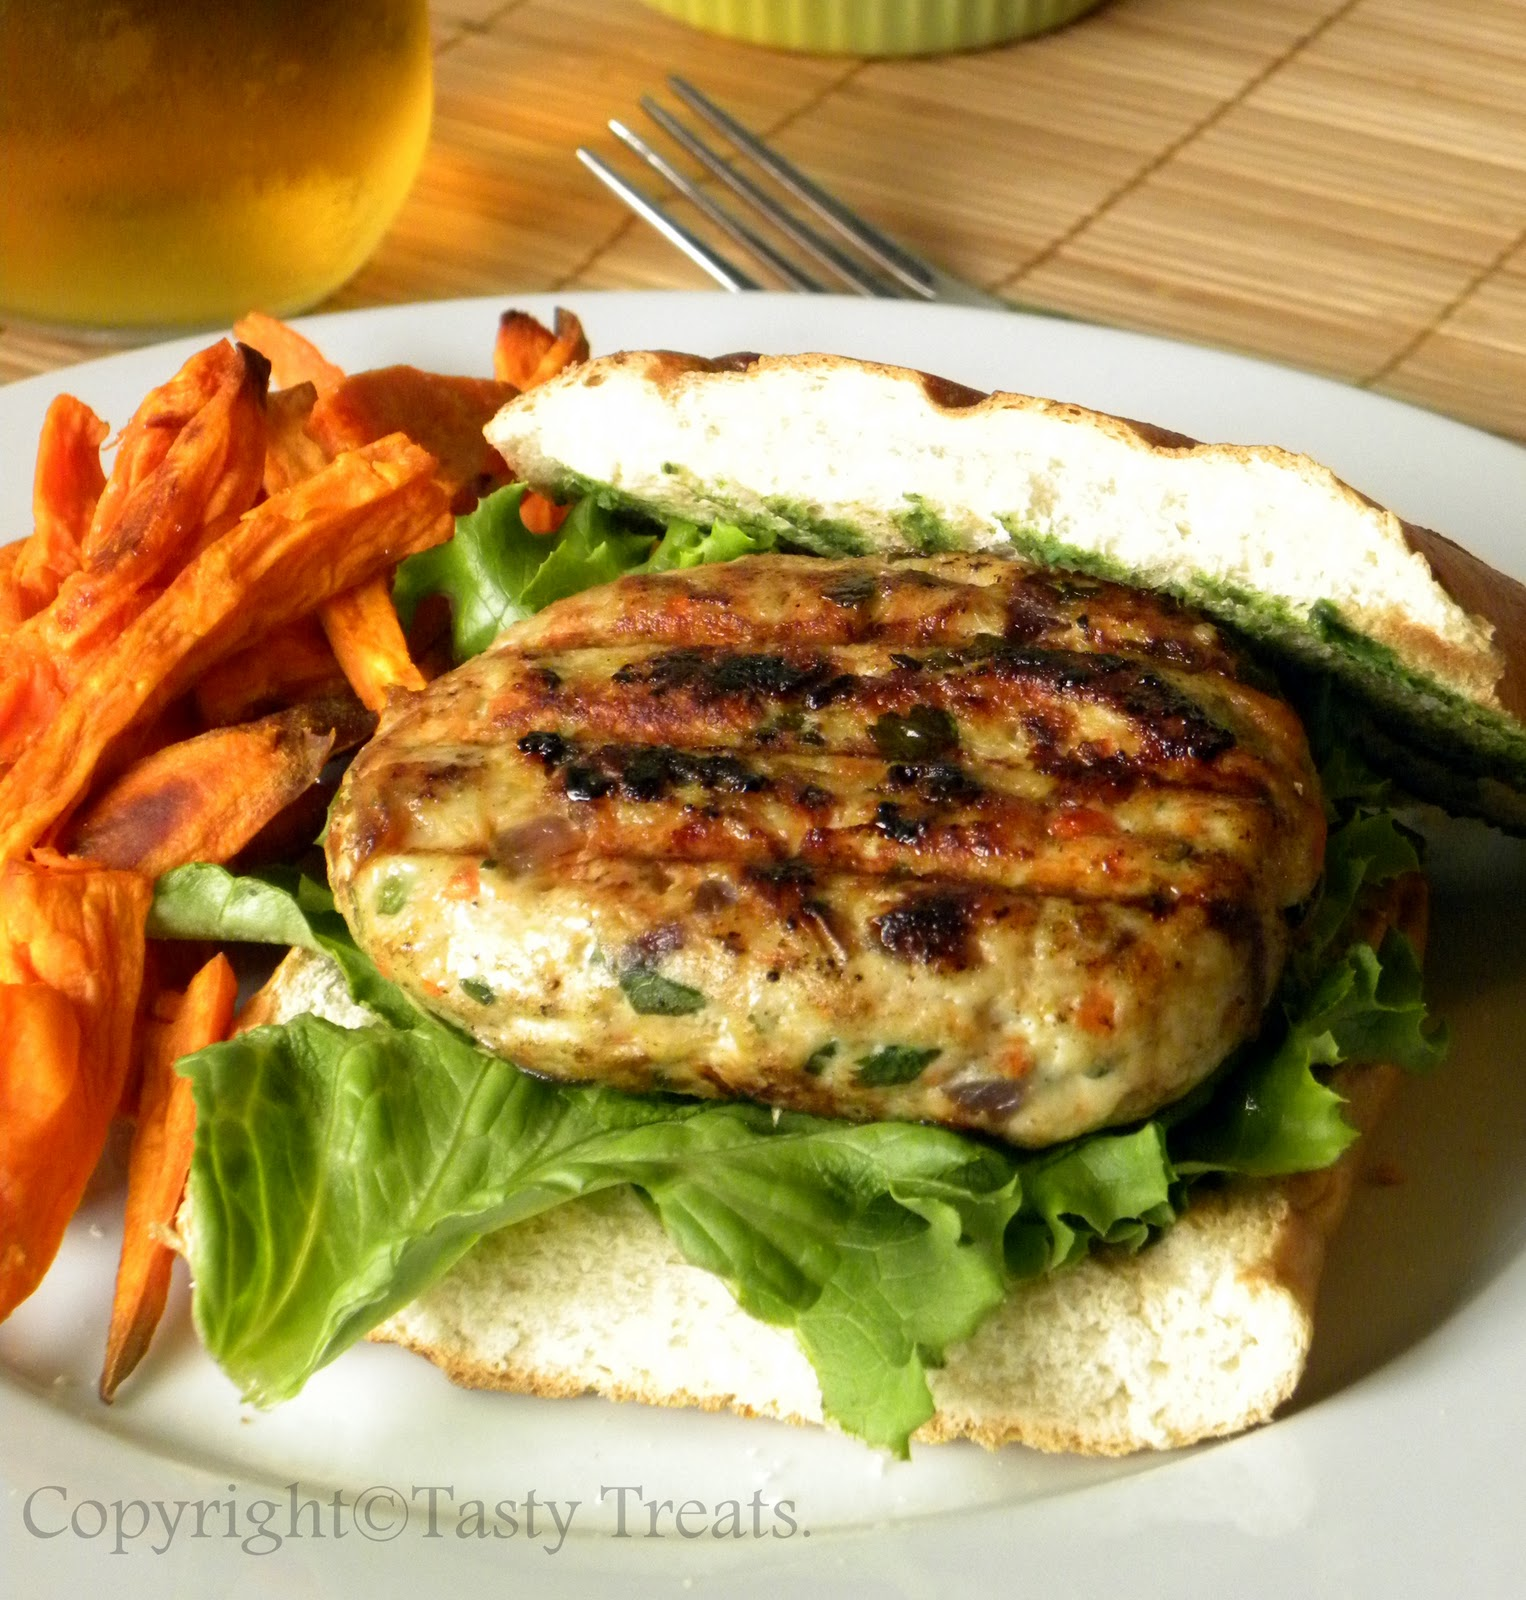 Tasty Treats: Turkey Burgers with Zucchini Tomato Yogurt Relish